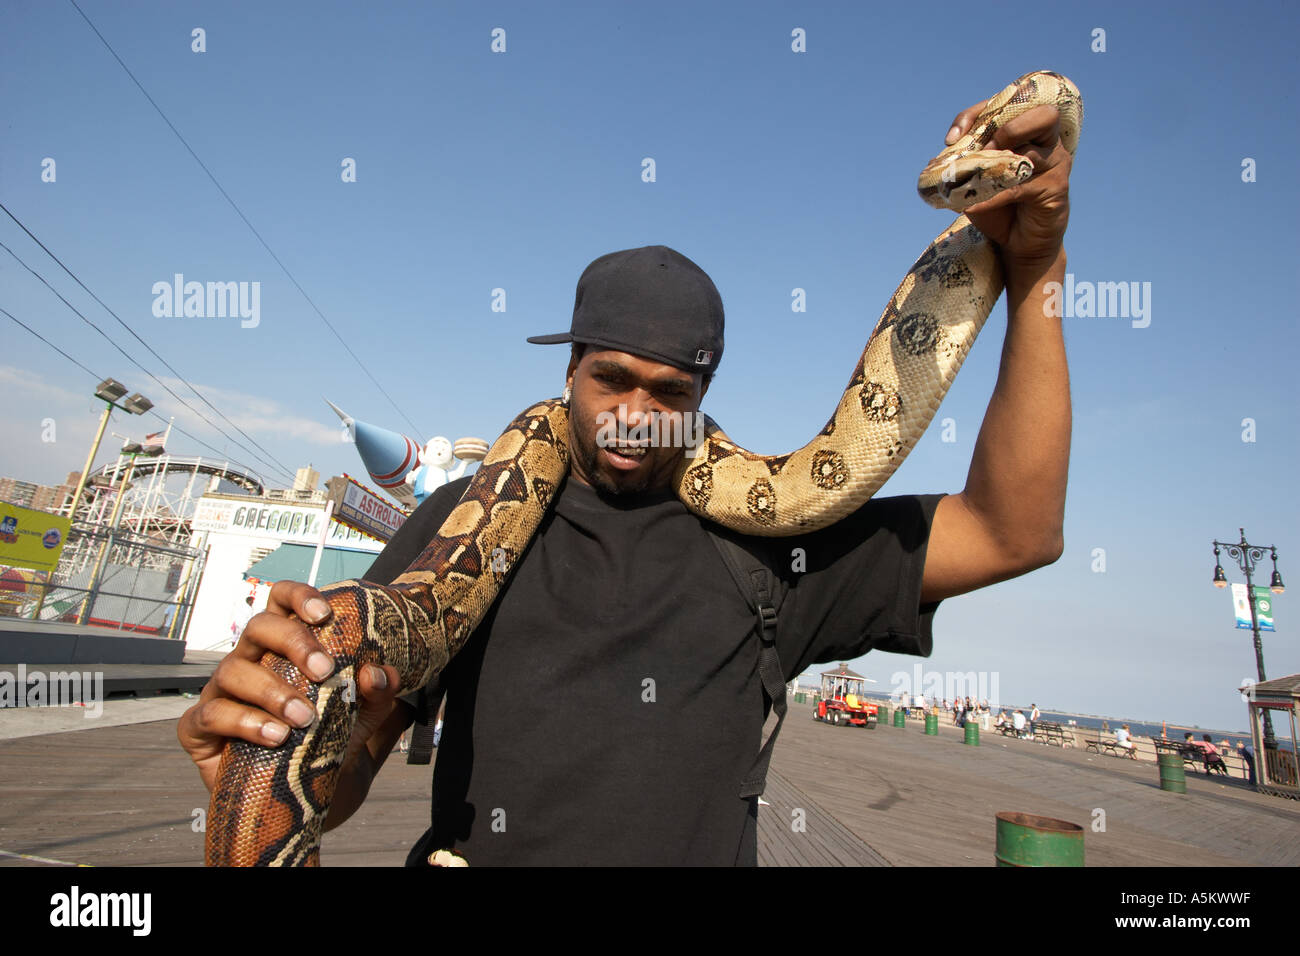 L'homme avec l'animal python sur la promenade à Coney Island Photo Stock